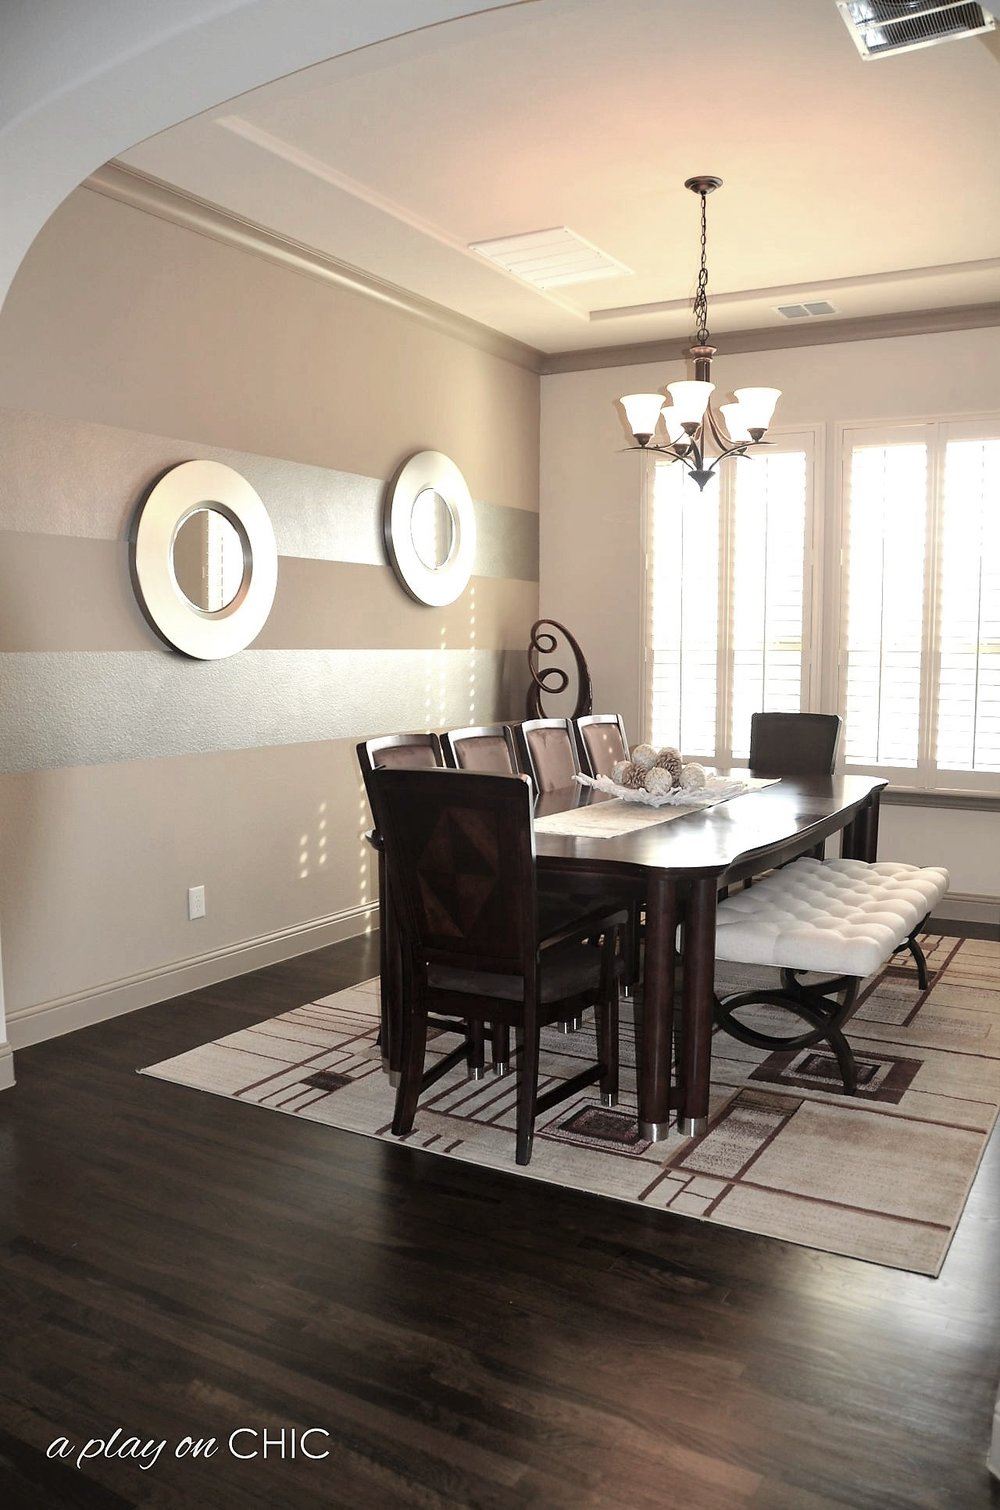 Dining-Room-Metallic-Double-Mirrors www.aplayonchic.com